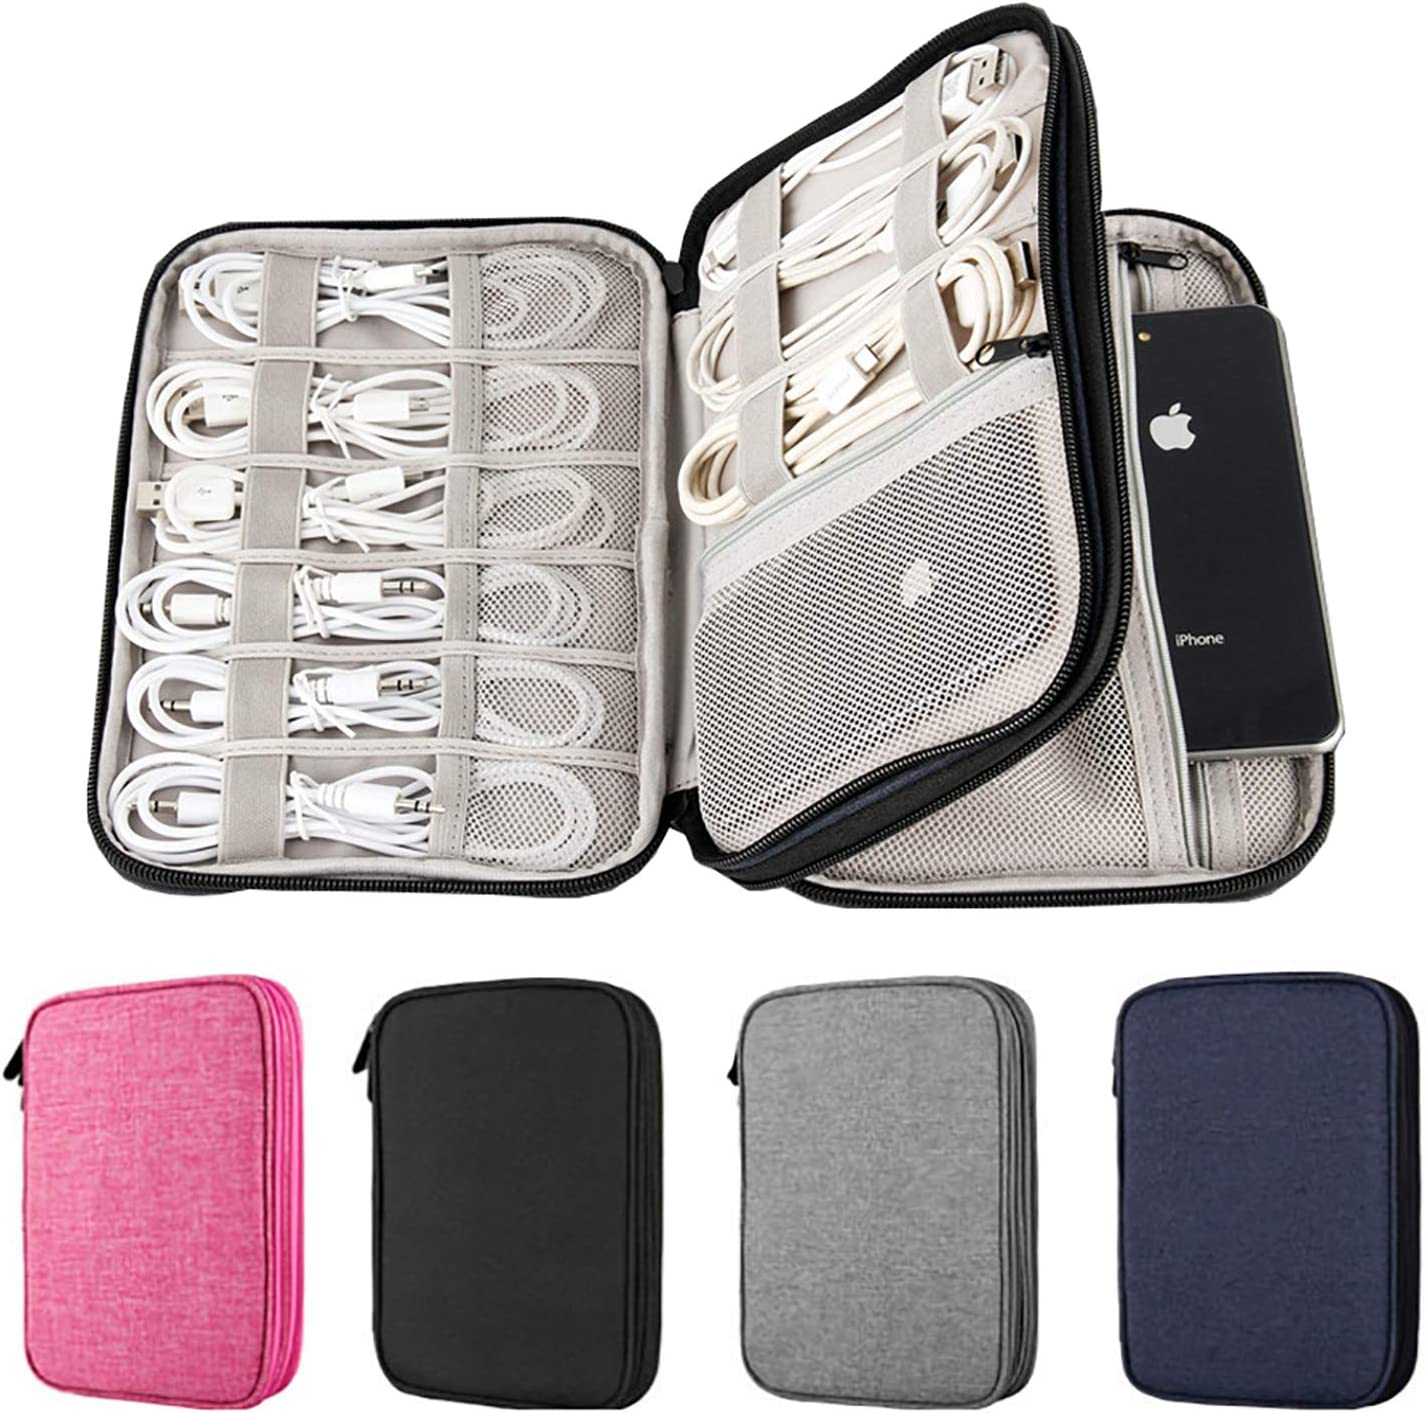 Electronics Organizer, 2 Layer Electronic Accessories Organizer Travel Storage Bag for Charging Cable, phone, Power Bank, Mini Tablet (Up to 7.9''), Make up Organizer Bag for Traveling (Navy)